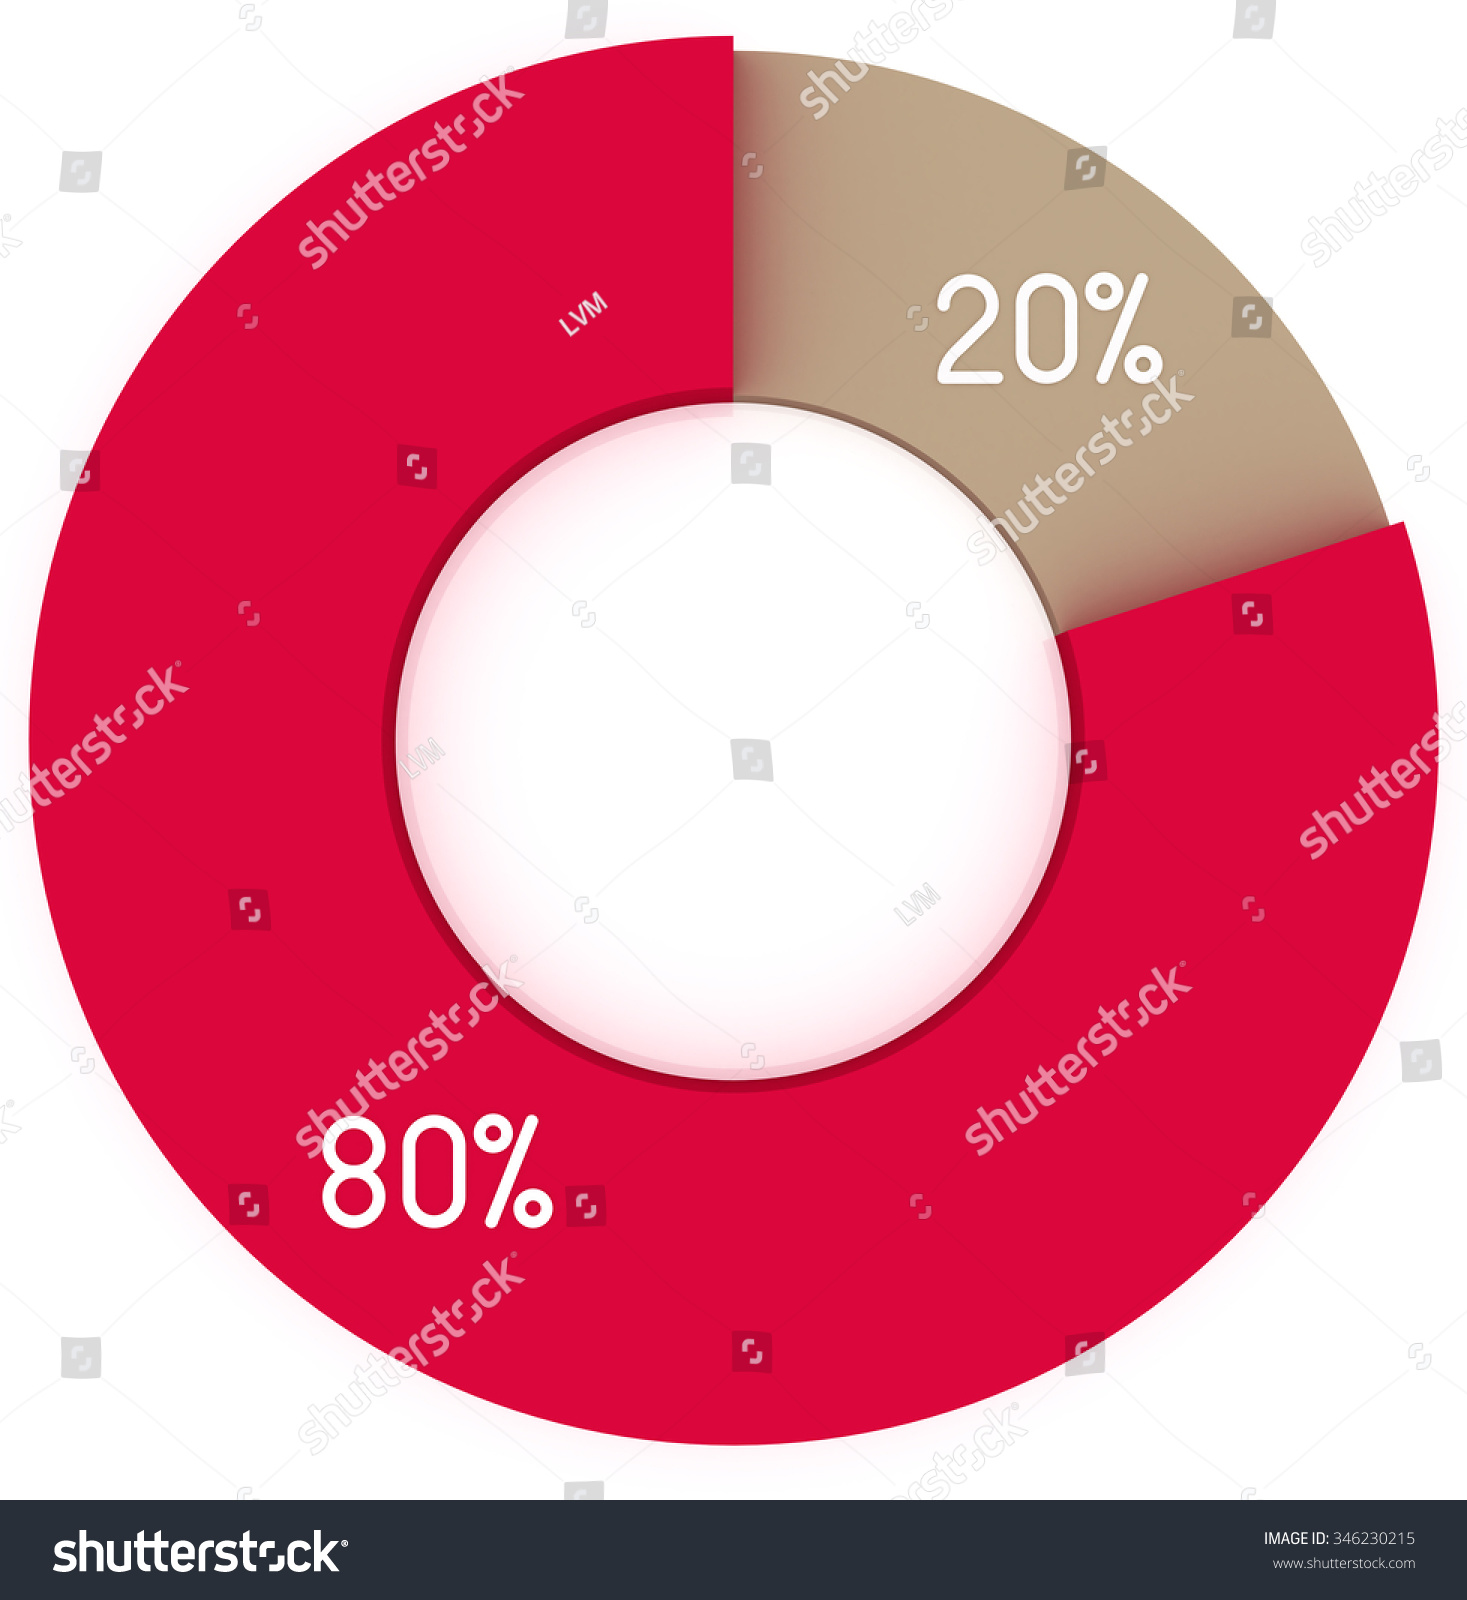 20 80 percent pie chart red stock illustration 346230215 shutterstock 20 80 percent pie chart red and beige circle diagram isolated on white background nvjuhfo Image collections